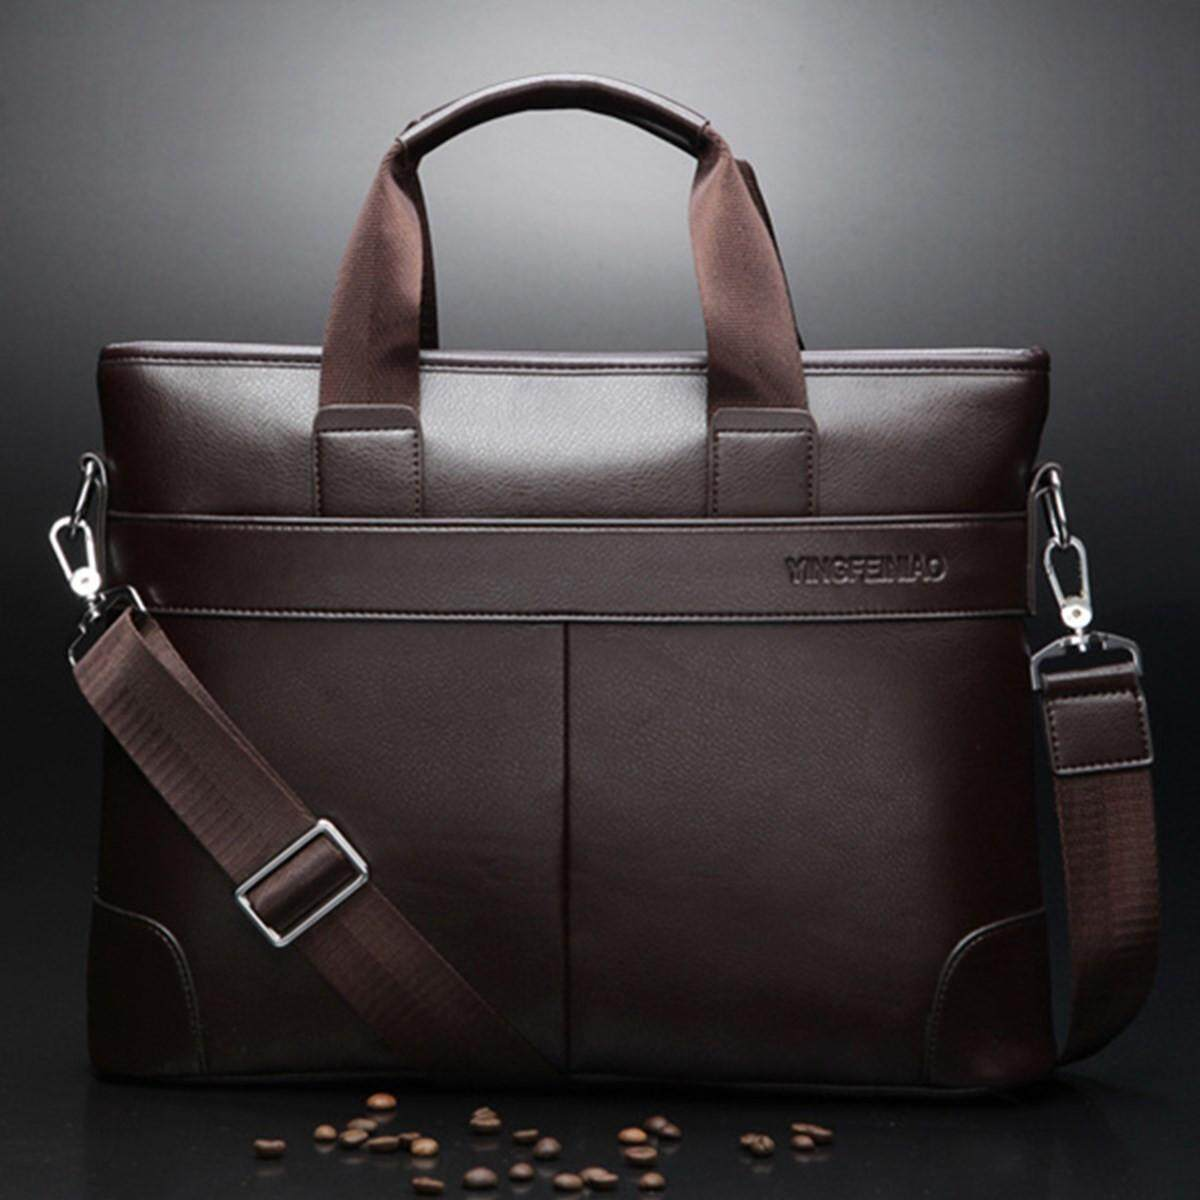 Beli Men Briefcase Leather Bag Business Shoulder Messenger Bags Laptop Handbag Intl Seken